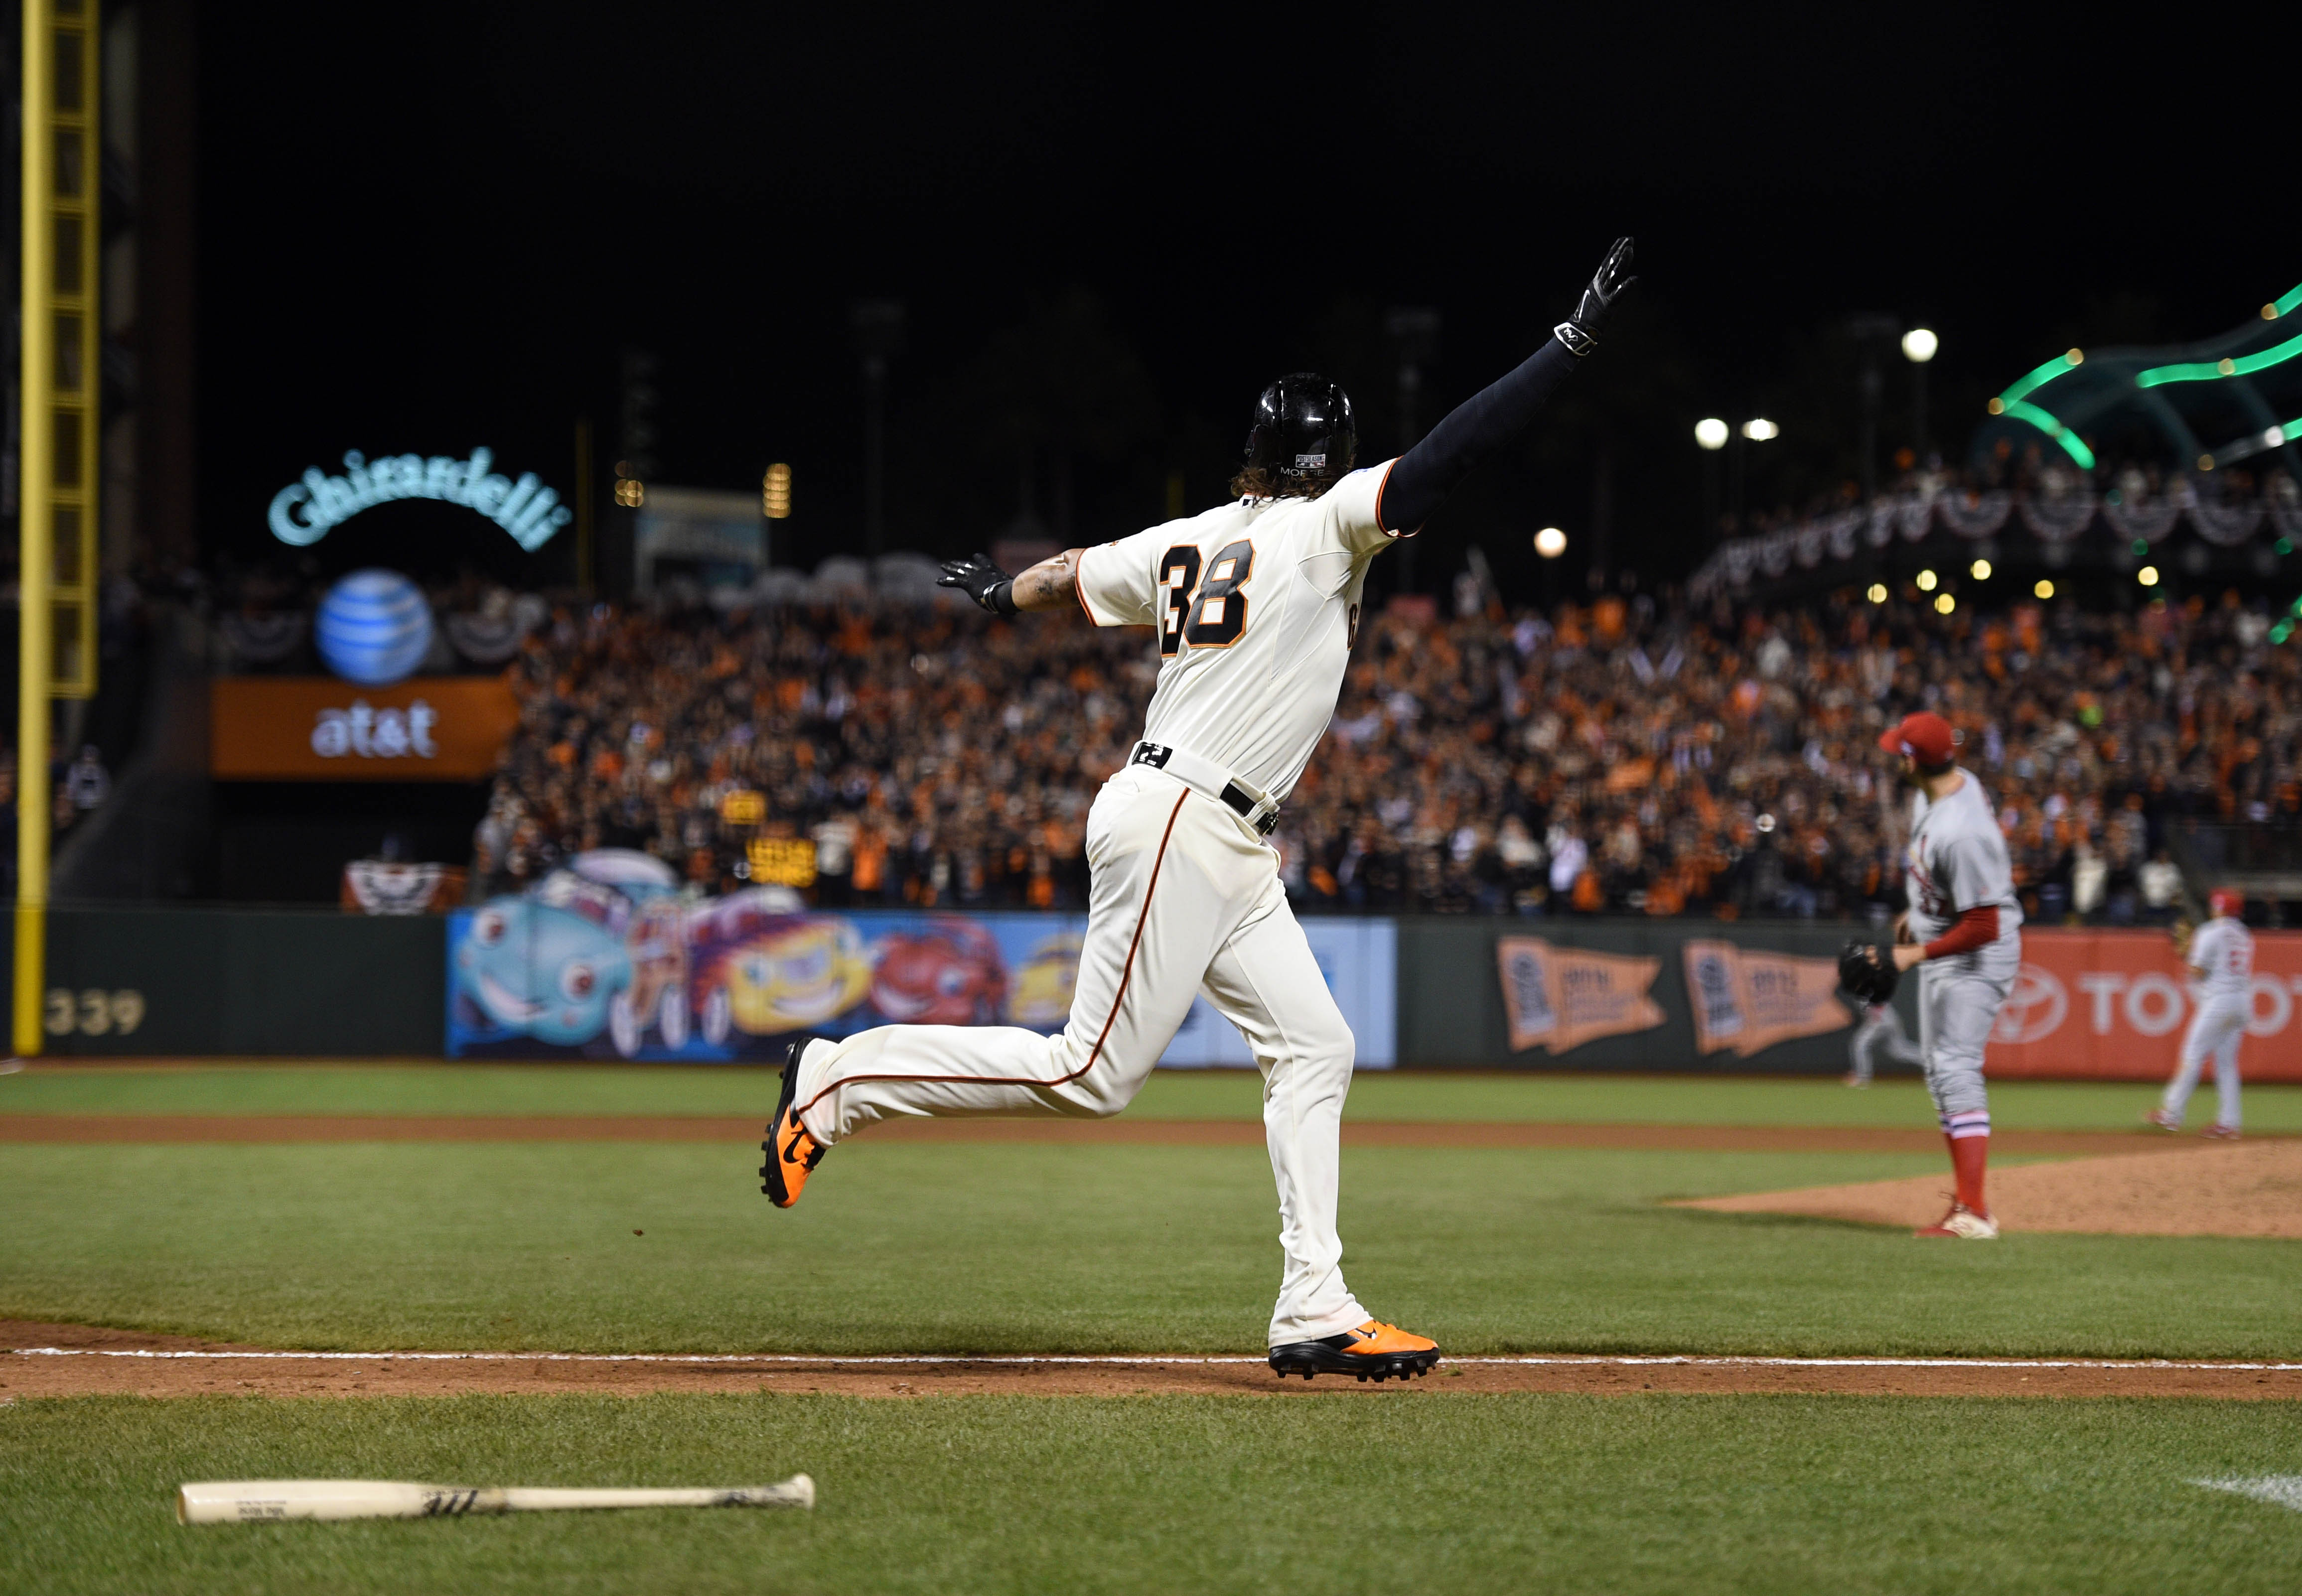 8146148-mlb-nlcs-st.-louis-cardinals-at-san-francisco-giants